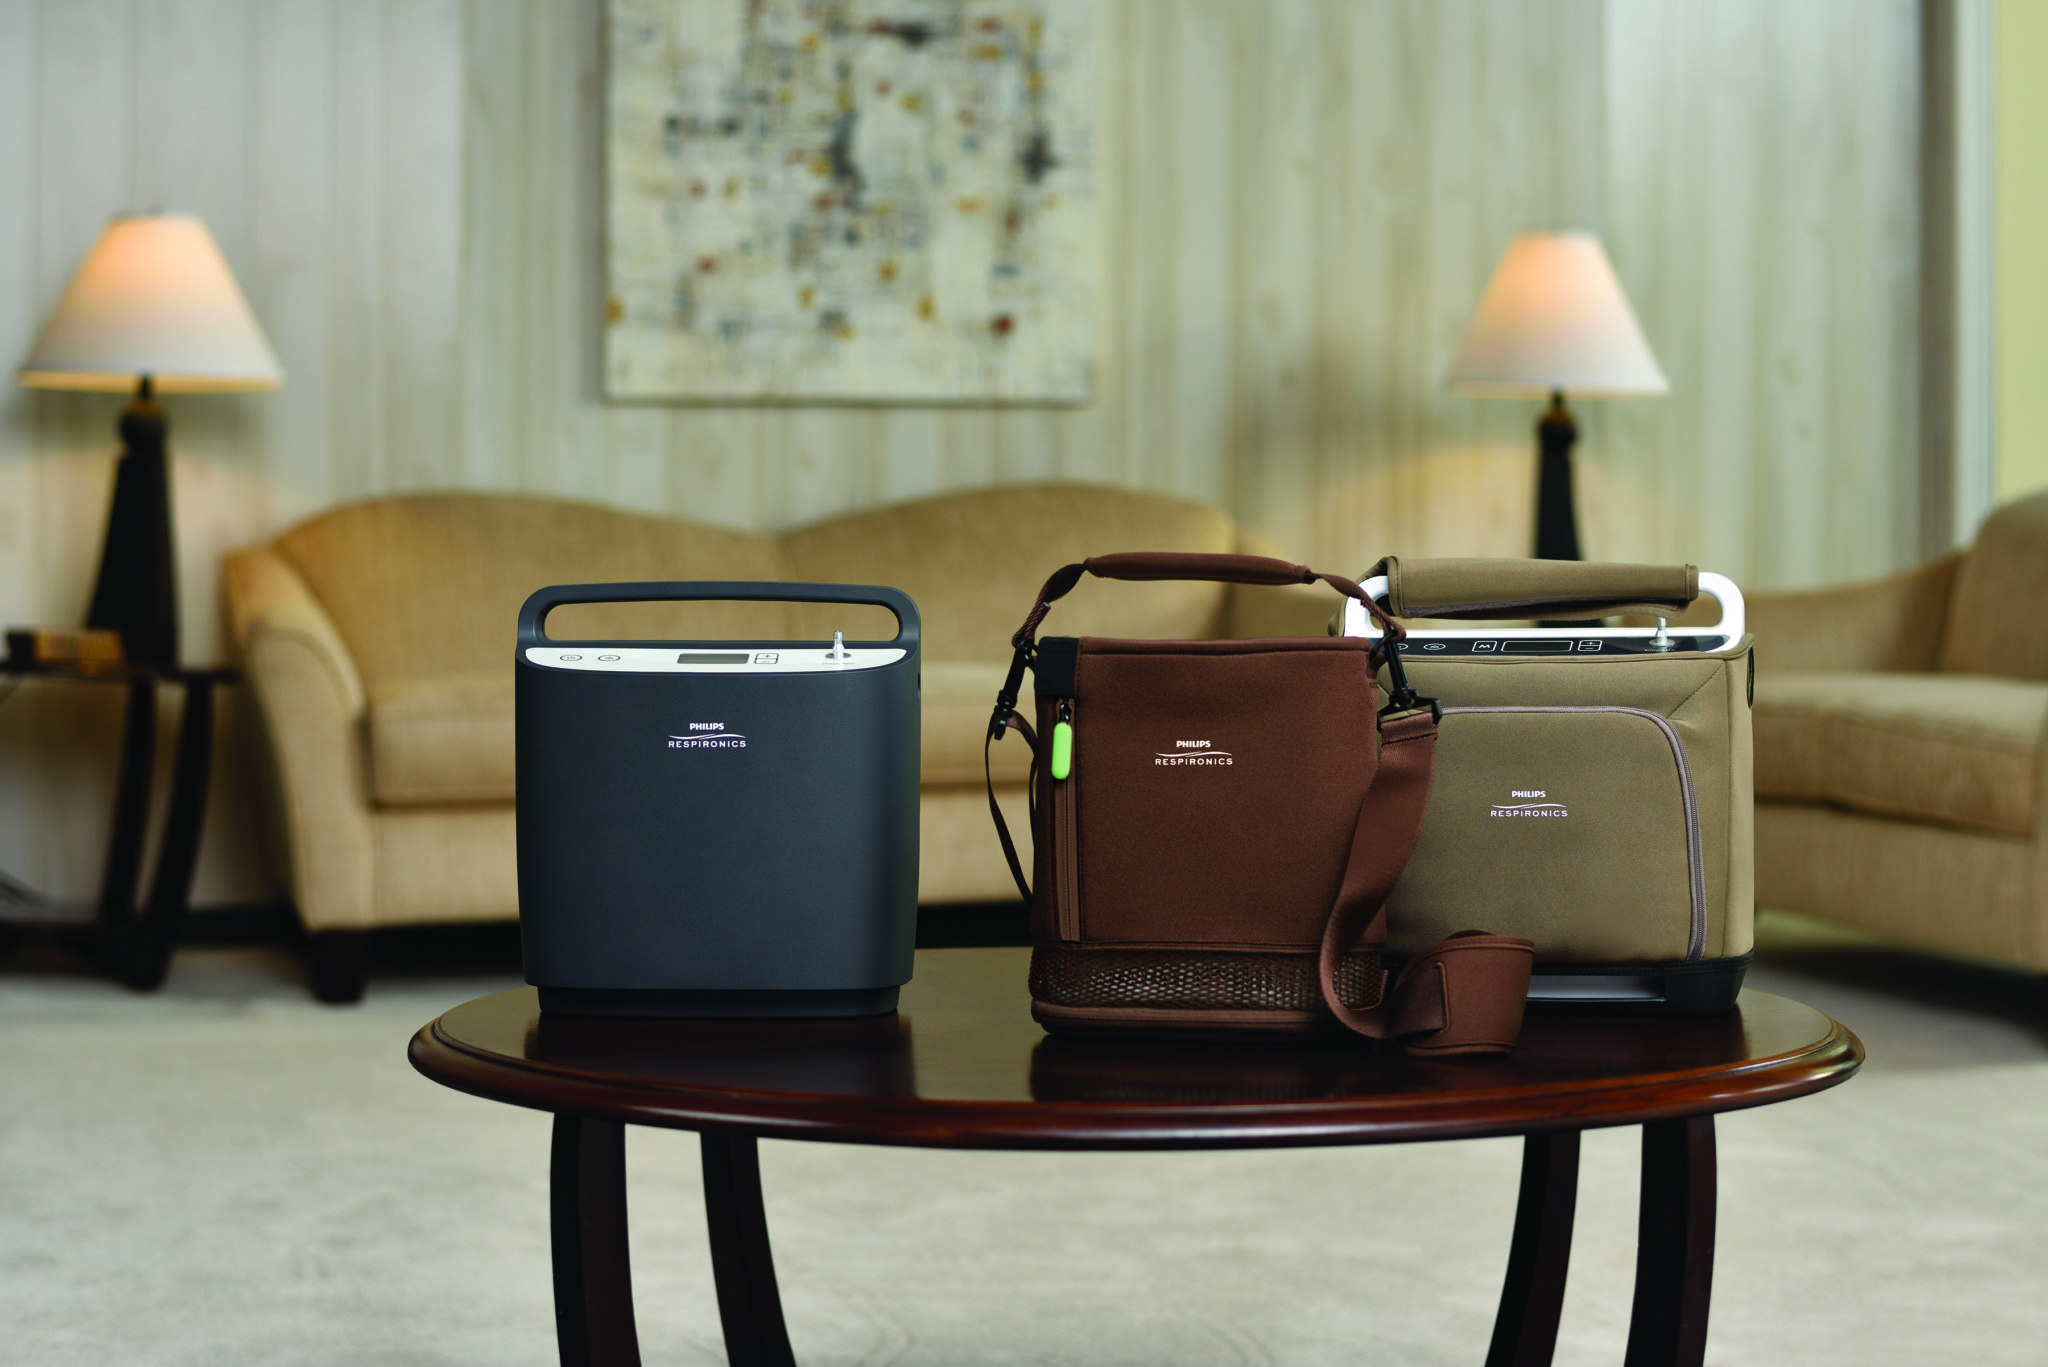 Portable Oxygen Concentrator Reviews And Buying Guide by www.snoremagazine.com